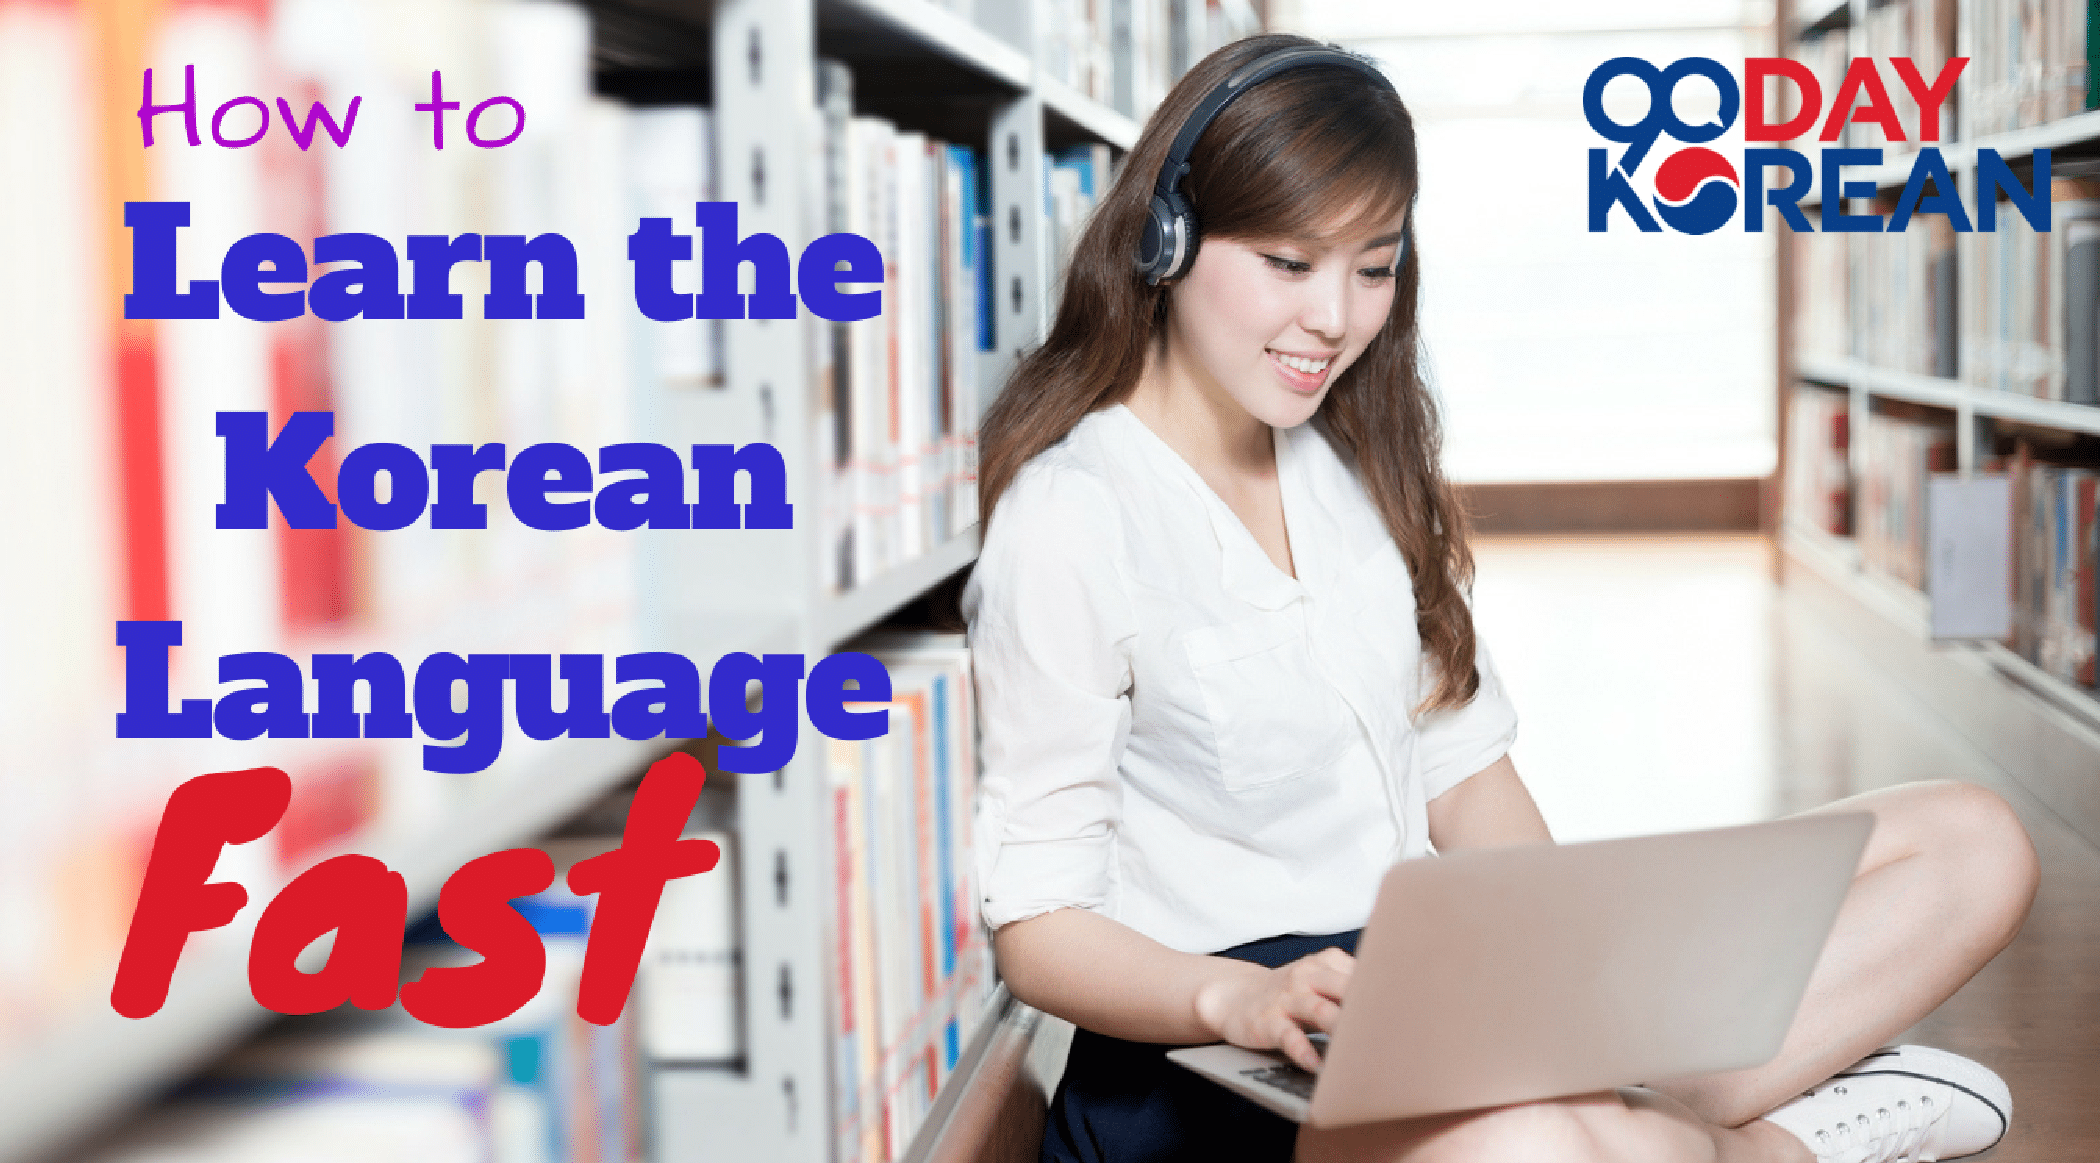 Learn Korean with Kpop - kpopfashion.net